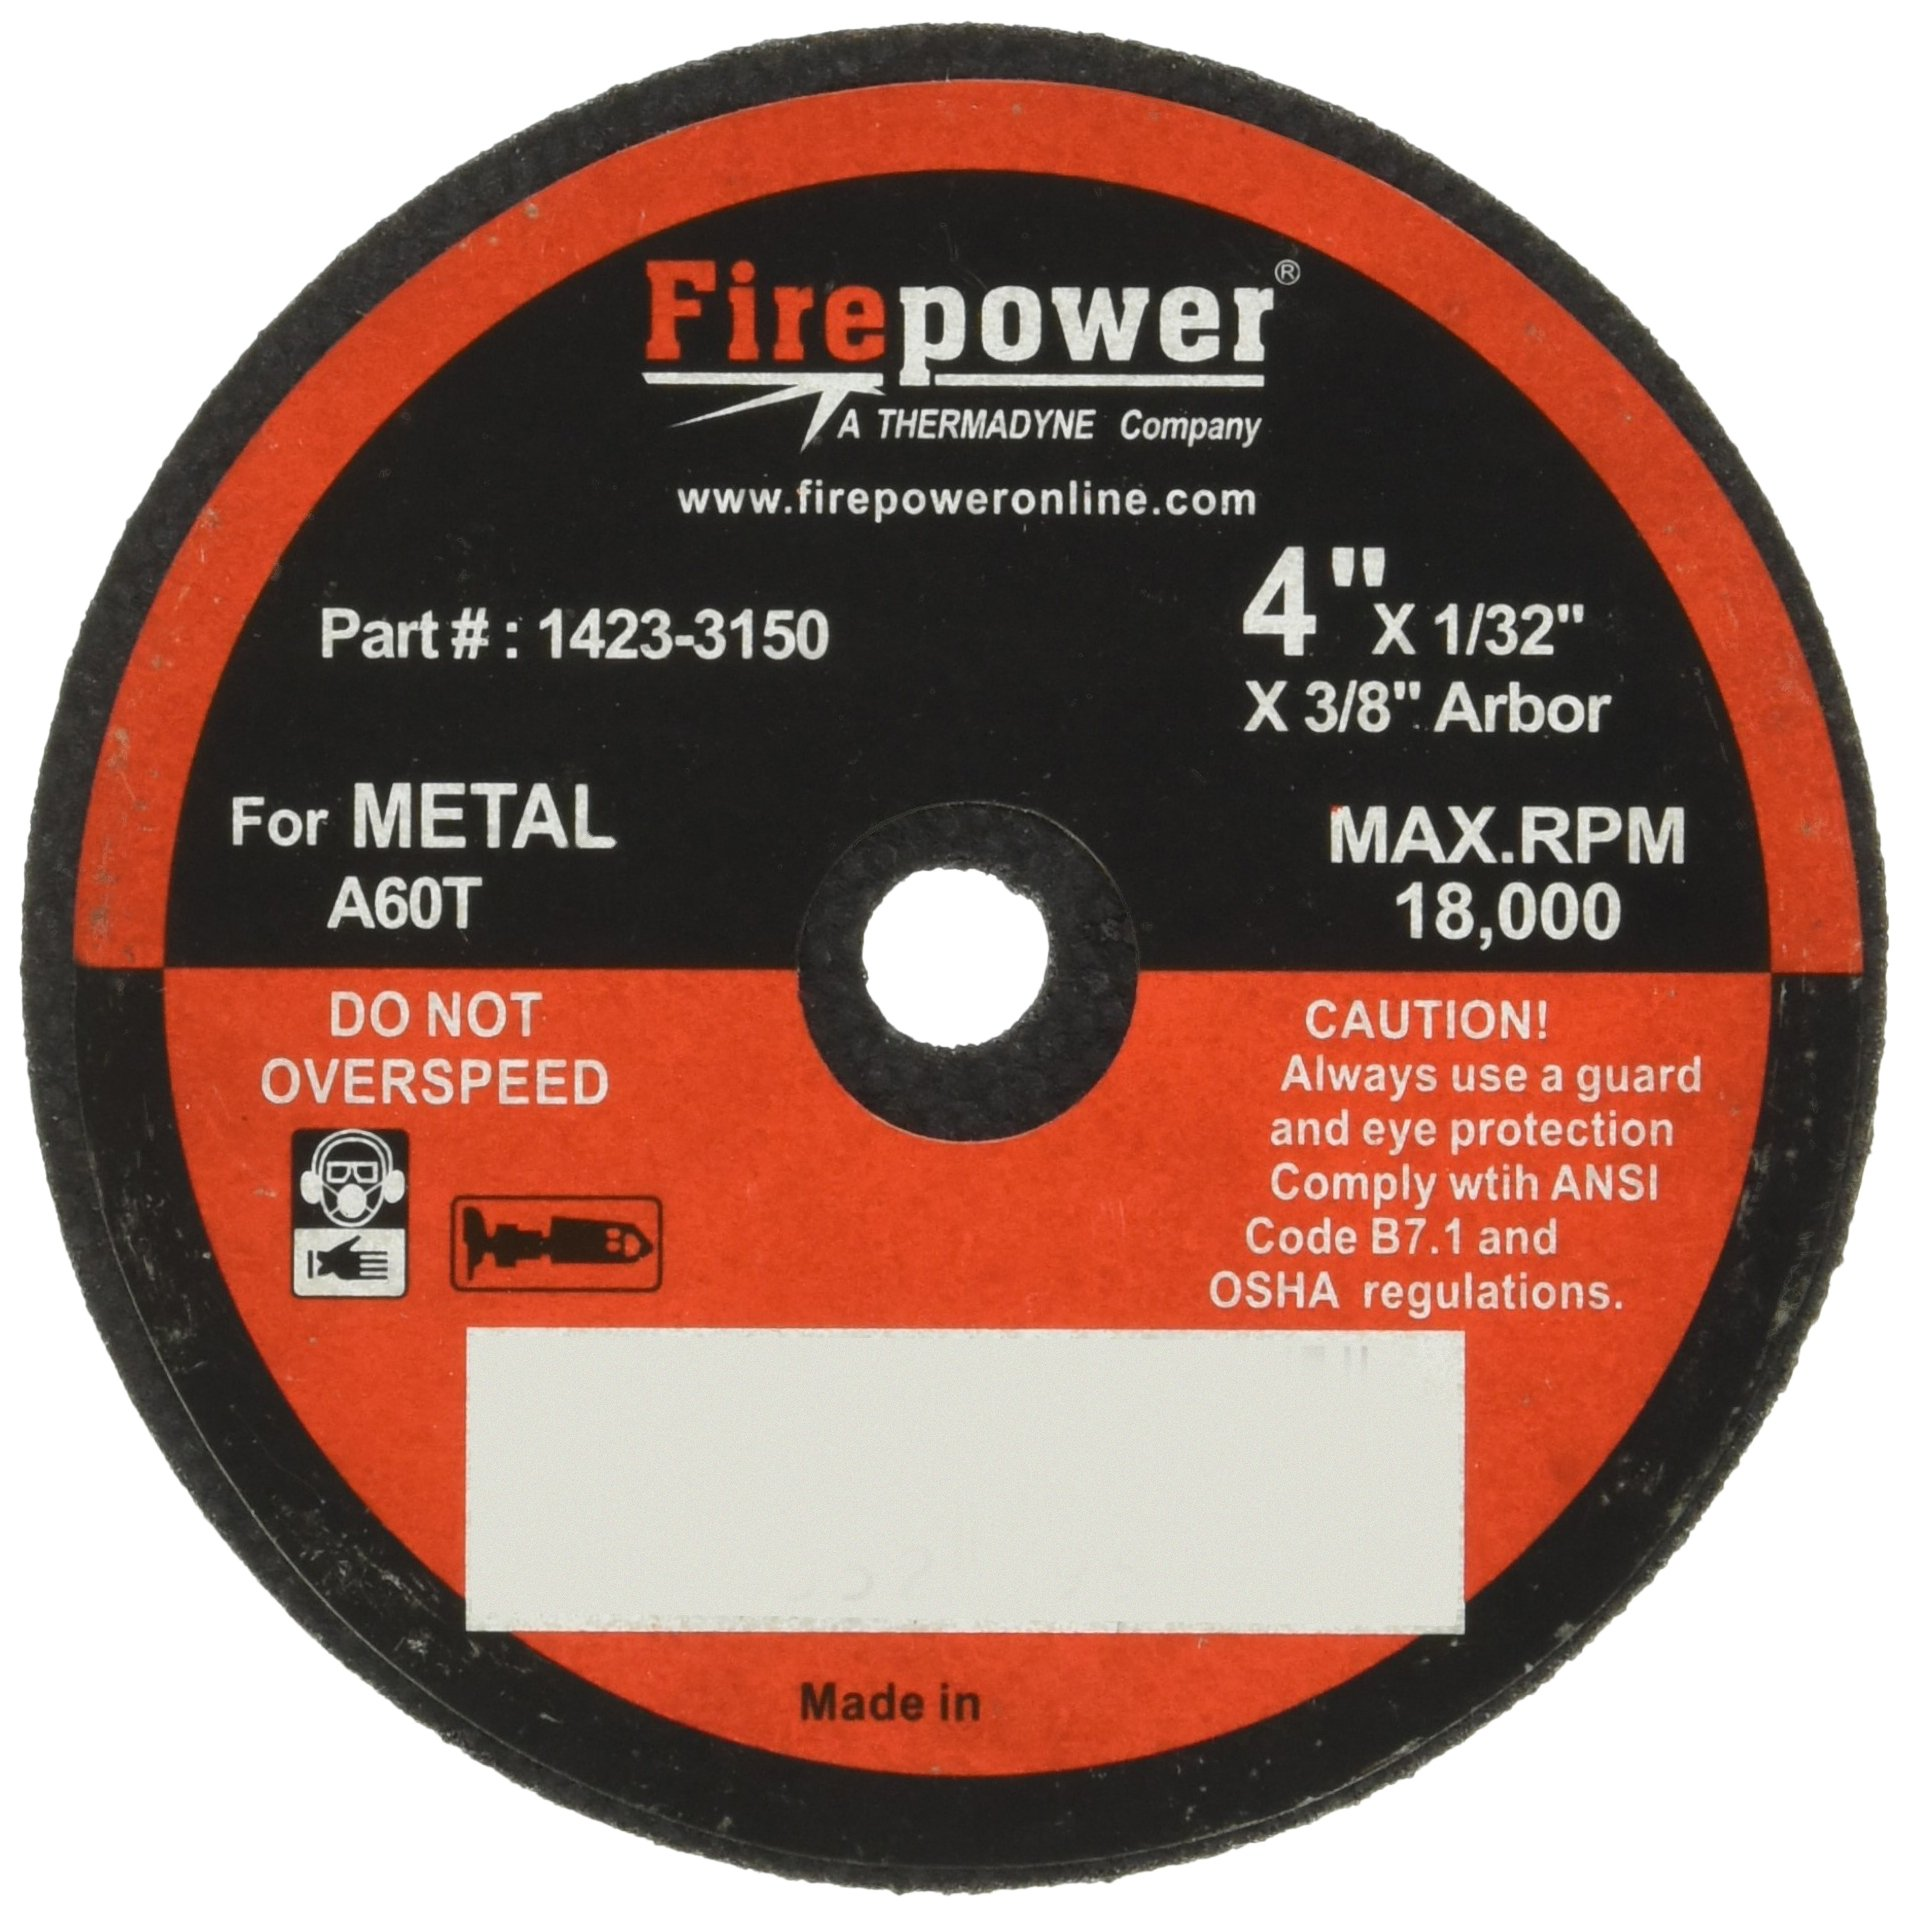 Firepower 1423-3182 Type 1 Abrasive Cut-Off Wheel for Metal, 4-Inch Diameter, 1/32-Inch Width with 3/8-Inch Hole, 5-Pack